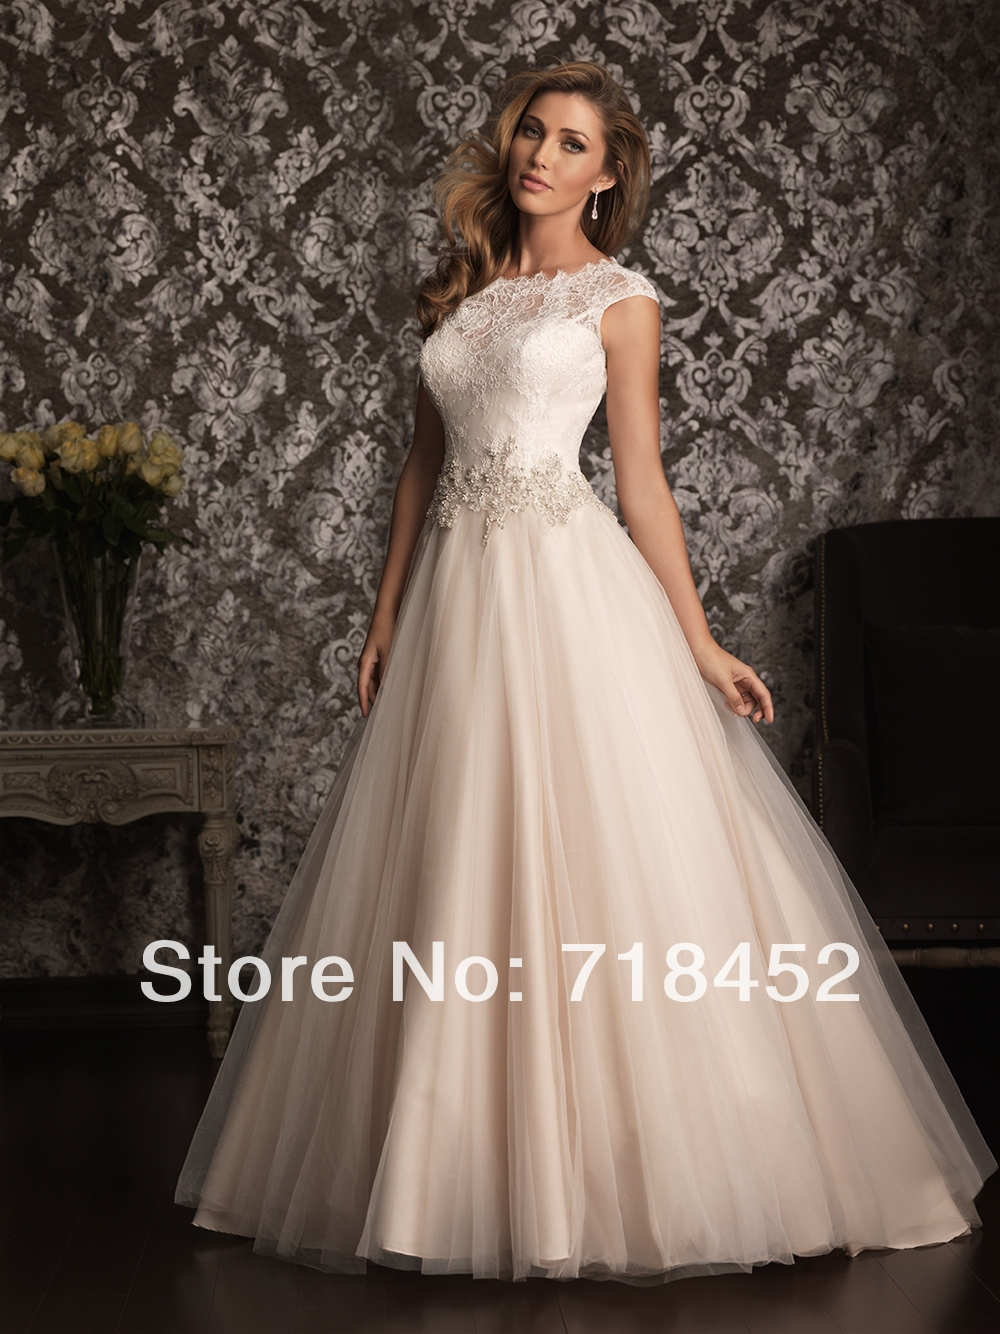 Buy 2014 new 50s style wedding dresses for New wedding dress styles